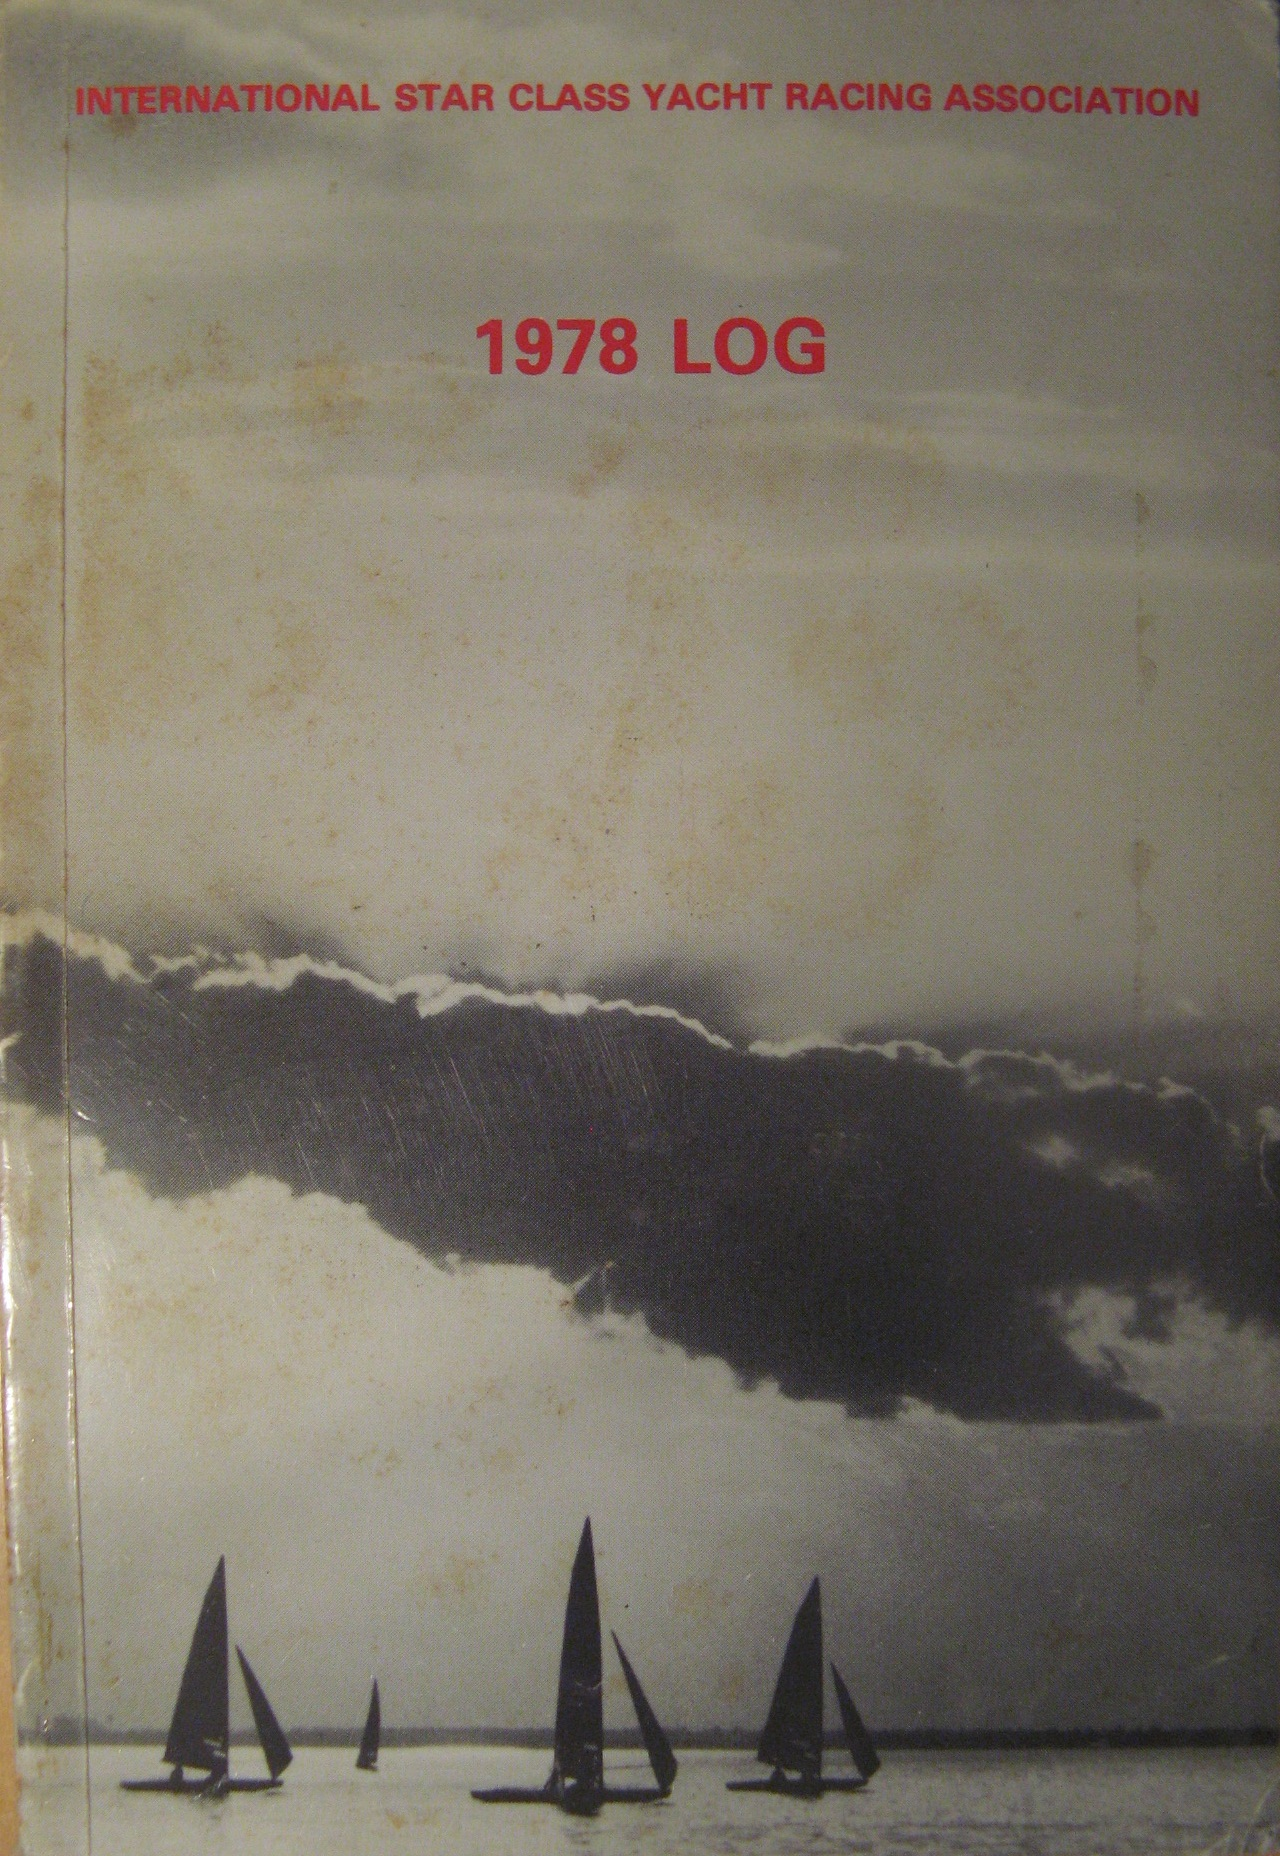 1978 Log of the Star class